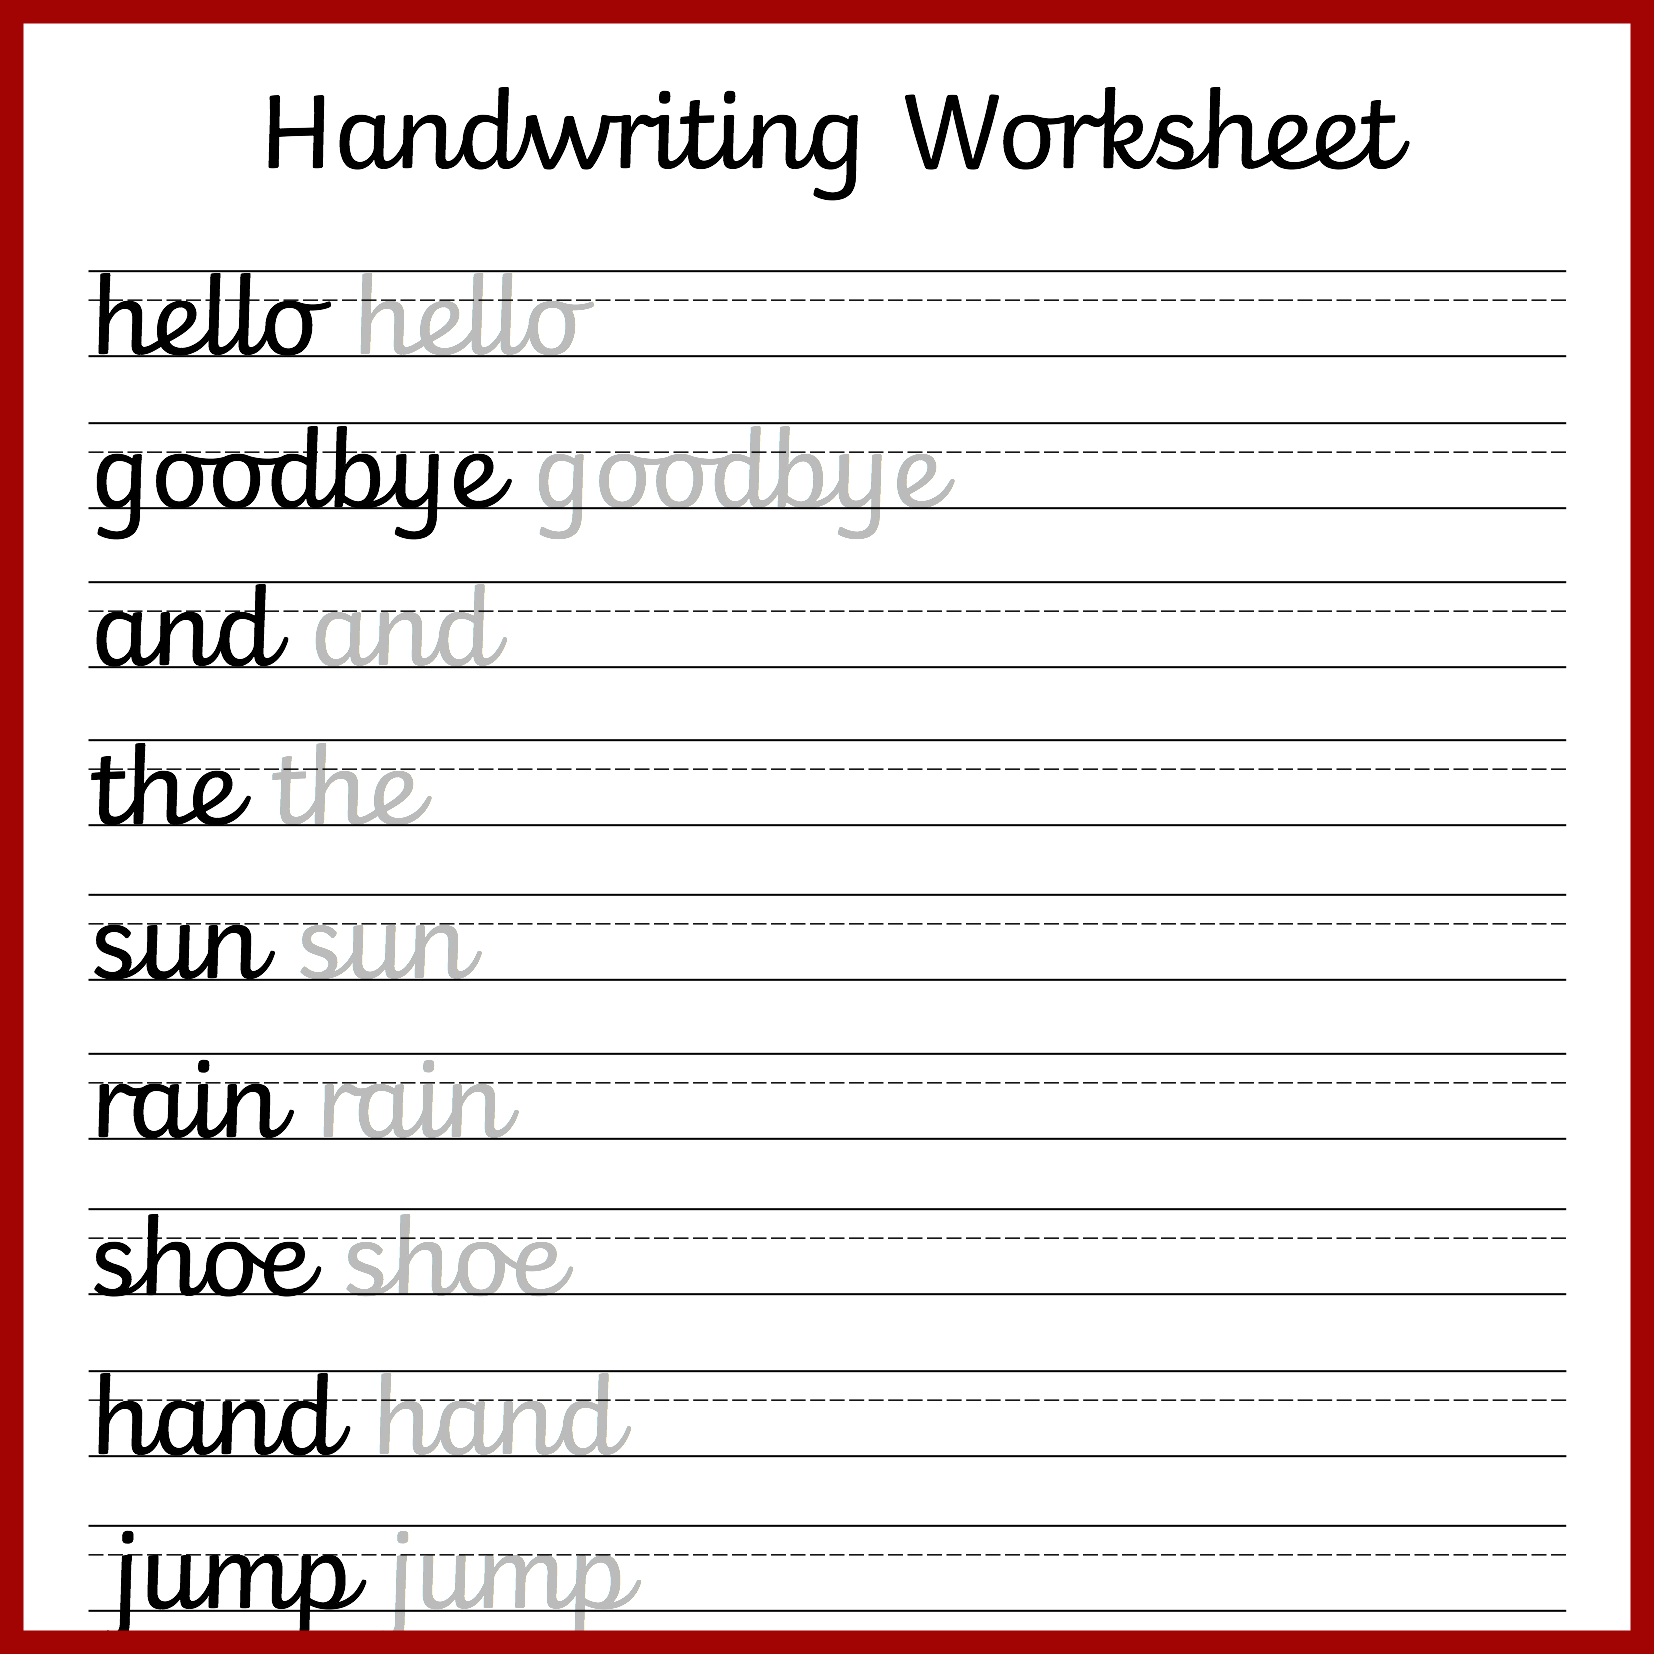 Worksheets Free Printable Handwriting Worksheets cursive handwriting worksheets free printable mama geek printable